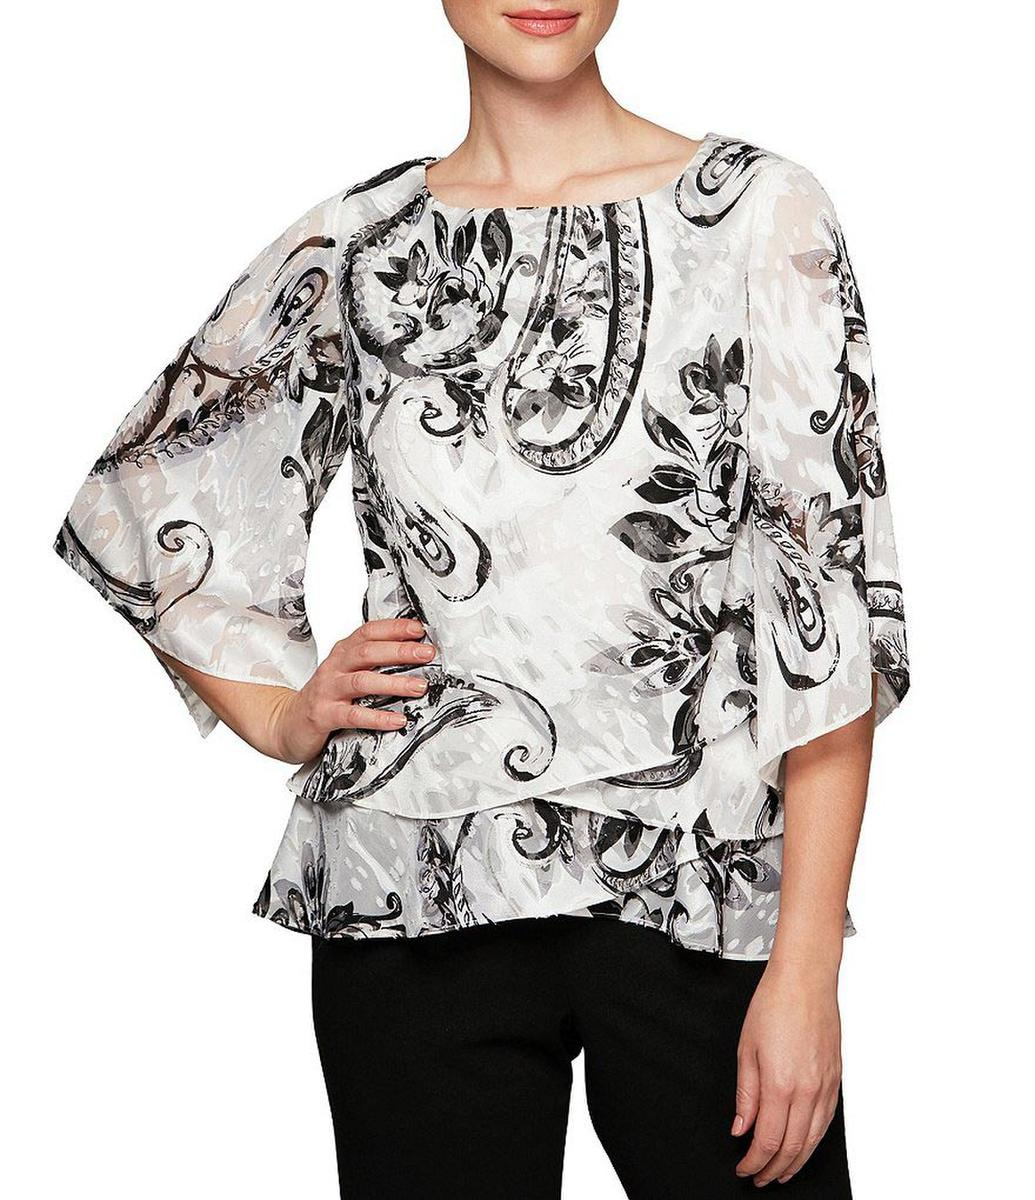 ALEX APPAREL GROUP INC - Floral Print Tiered Asymmetrical Blouse